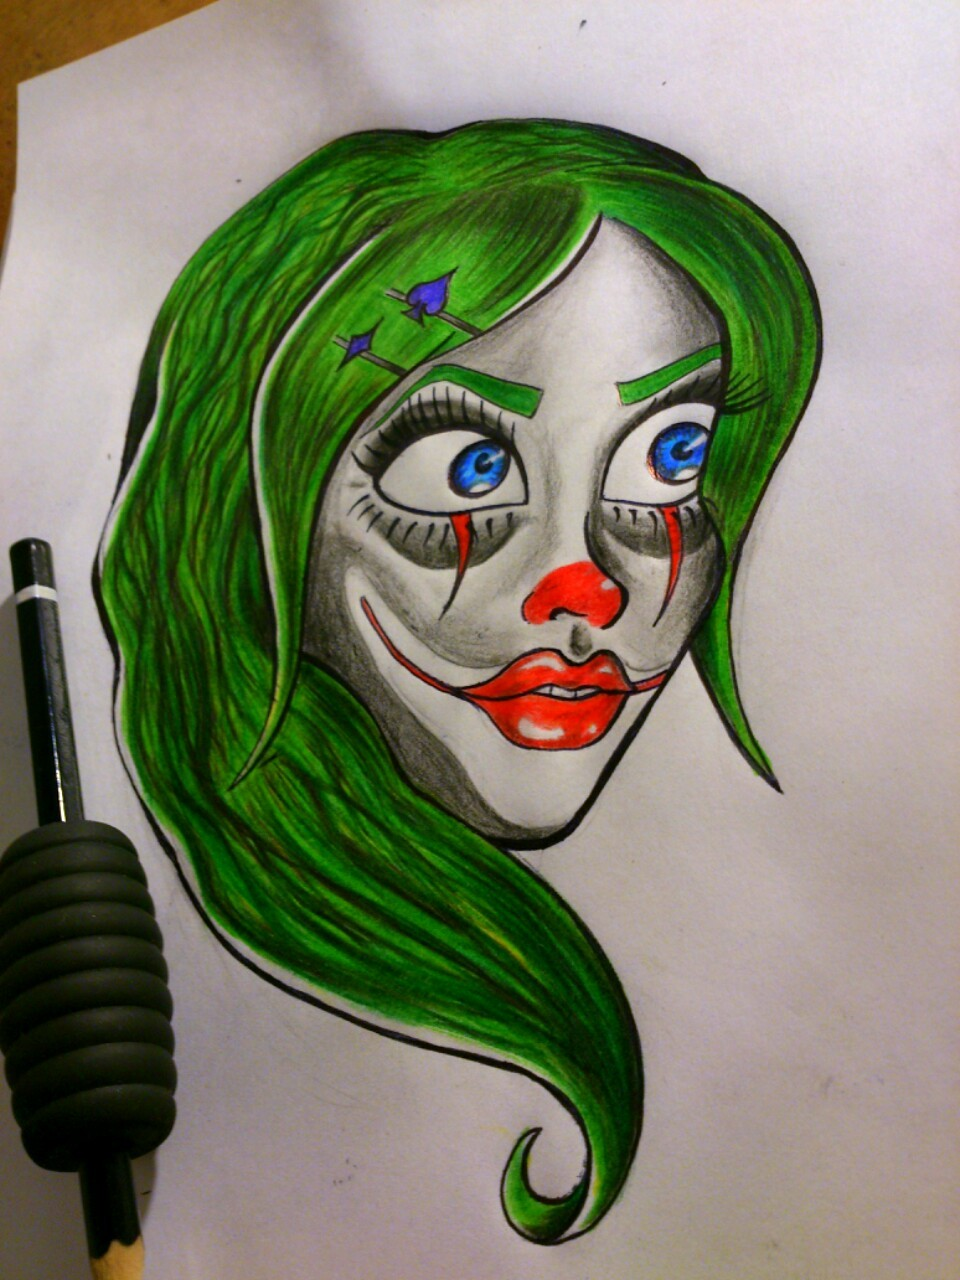 Finished yesterday's clown guuurl :)